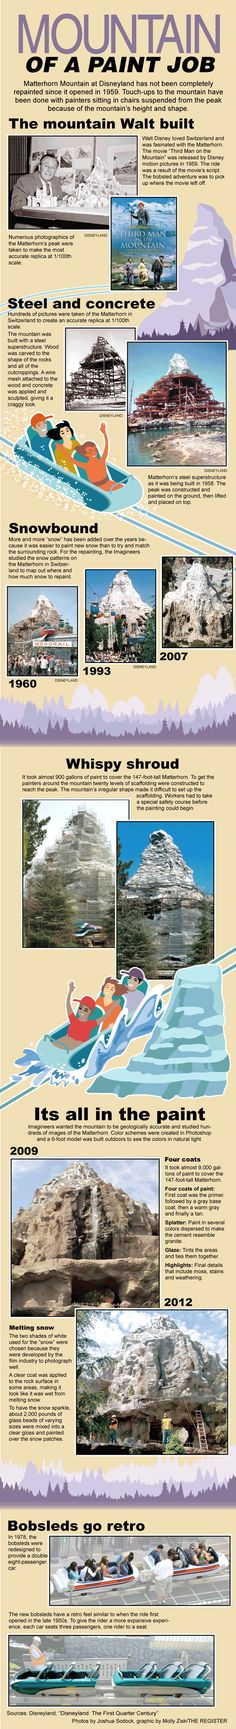 Disneyland Matterhorn repainting infographic via The Orange County Register (May 3, 2012).